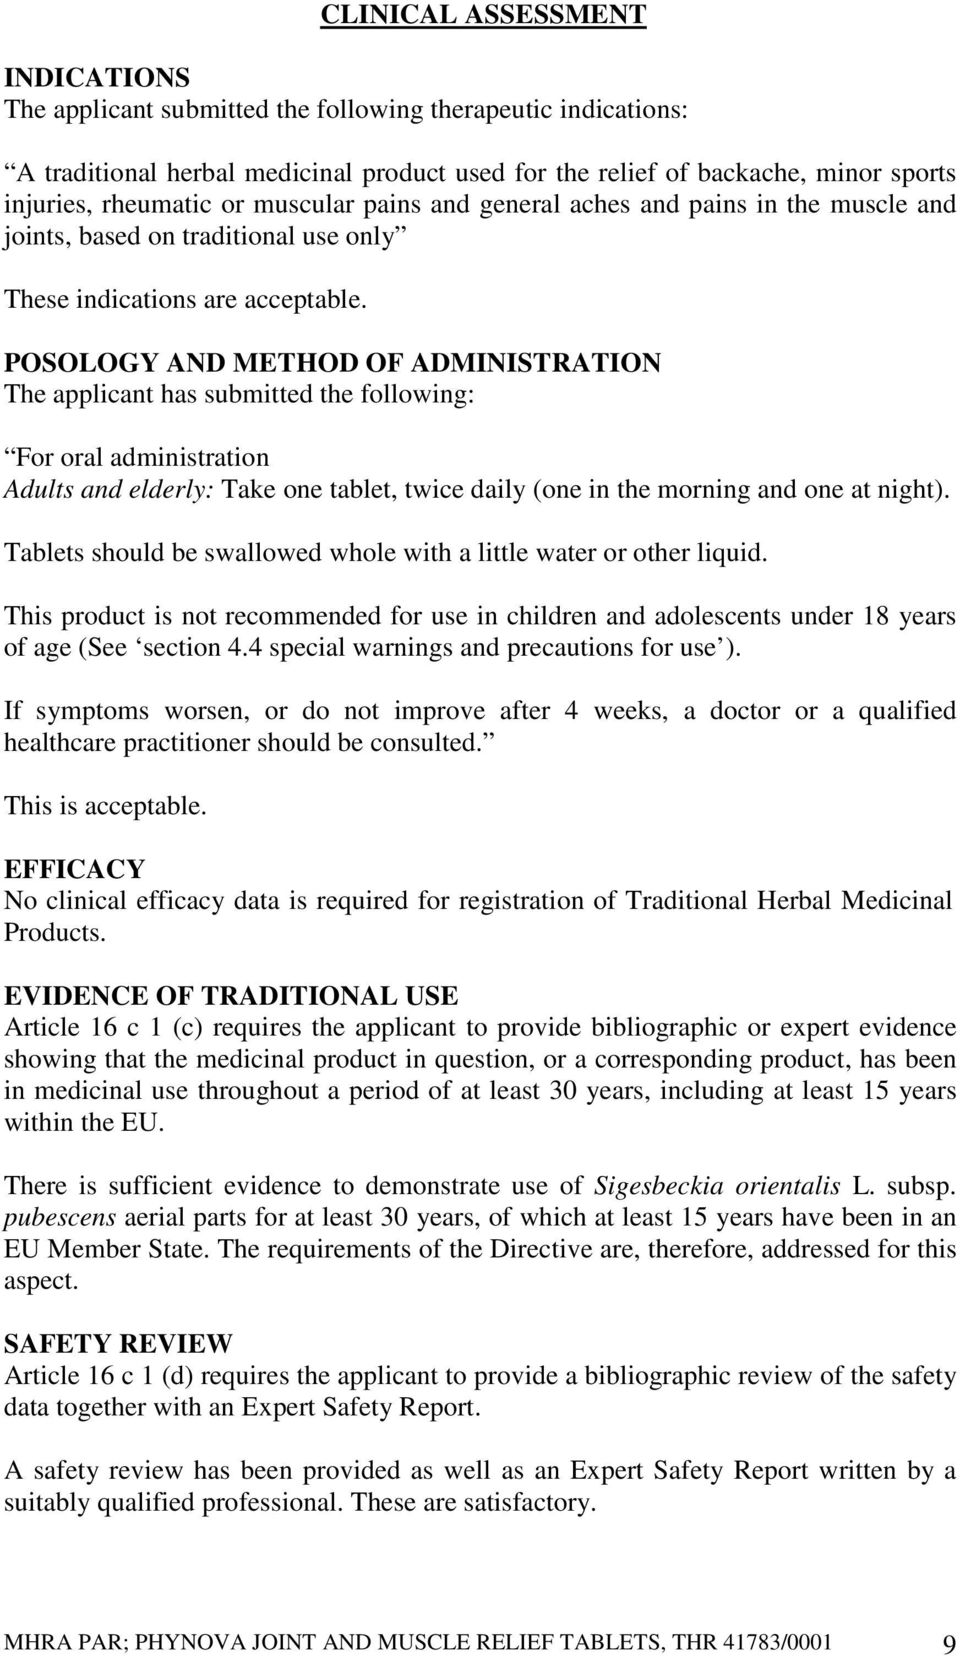 POSOLOGY AND METHOD OF ADMINISTRATION The applicant has submitted the following: For oral administration Adults and elderly: Take one tablet, twice daily (one in the morning and one at night).